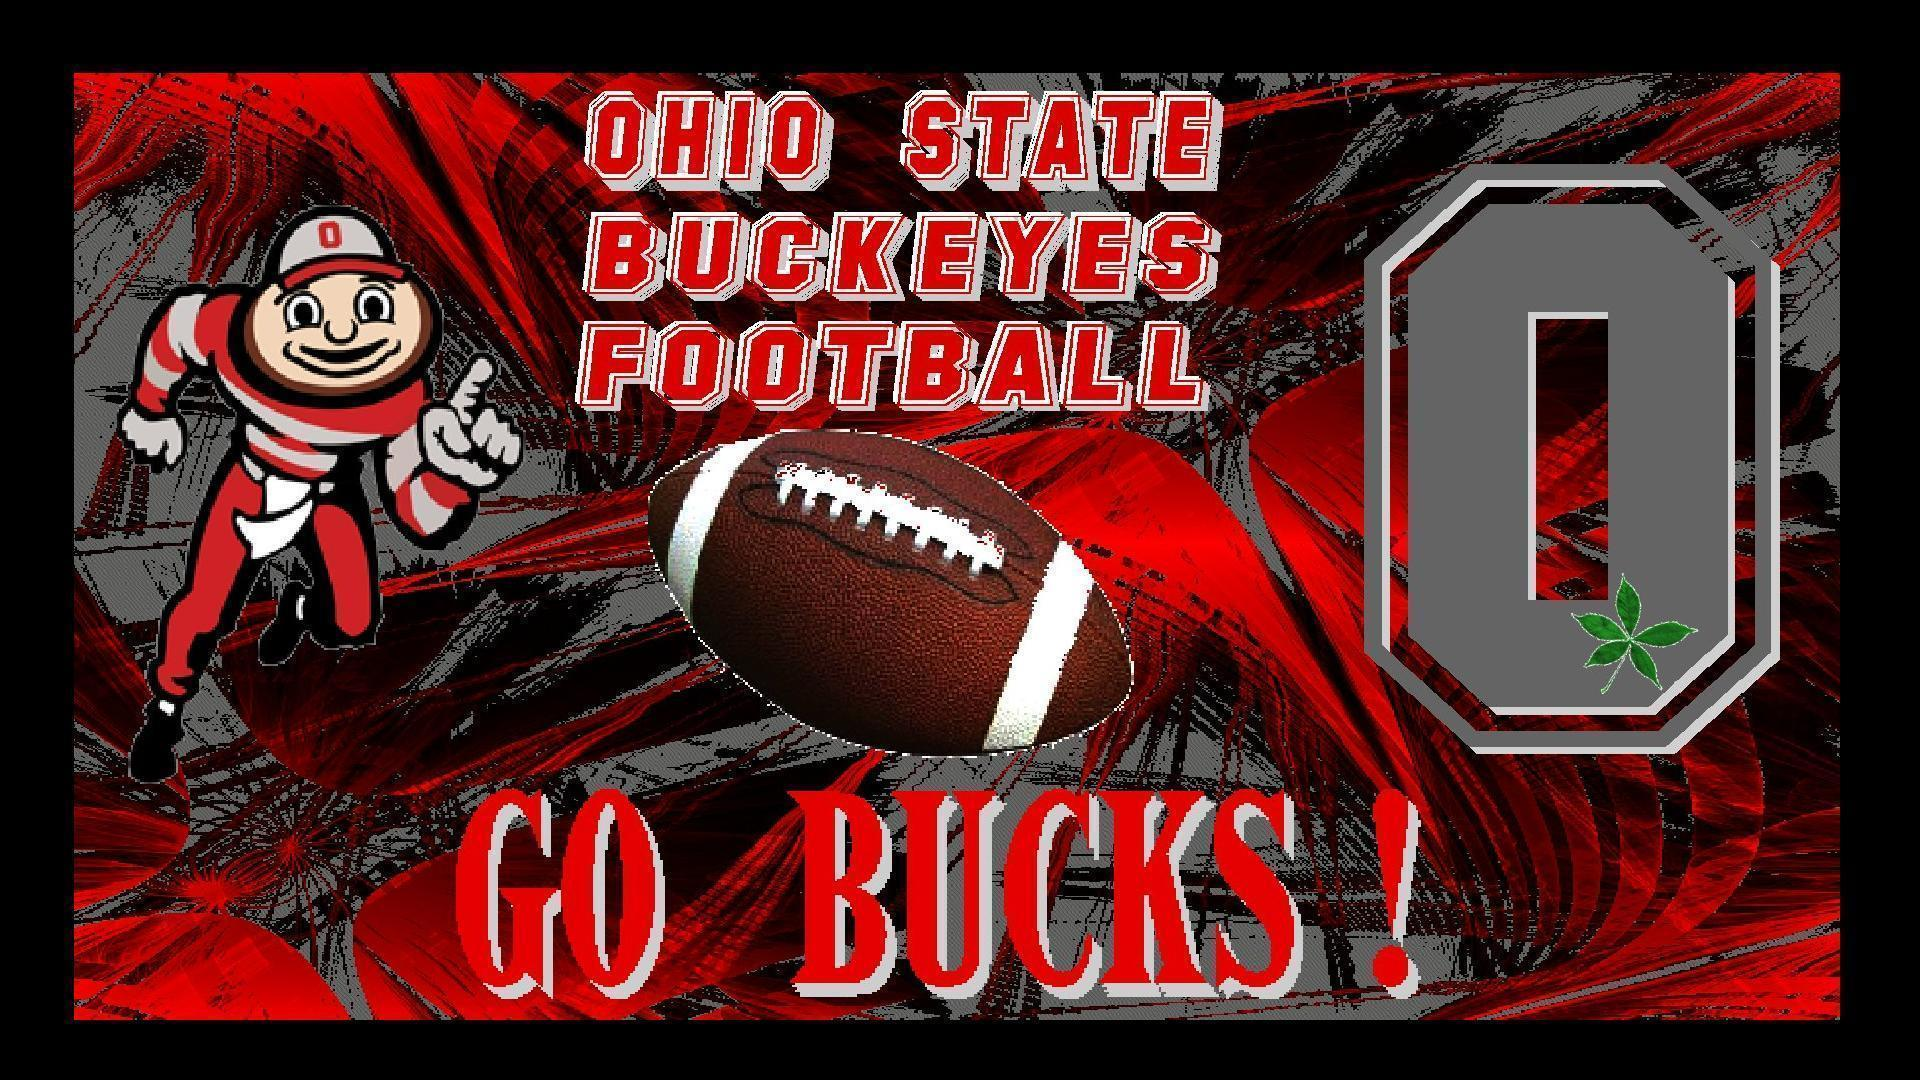 OHIO STATE BUCKEYES FOOTBALL, GO BUCKS!